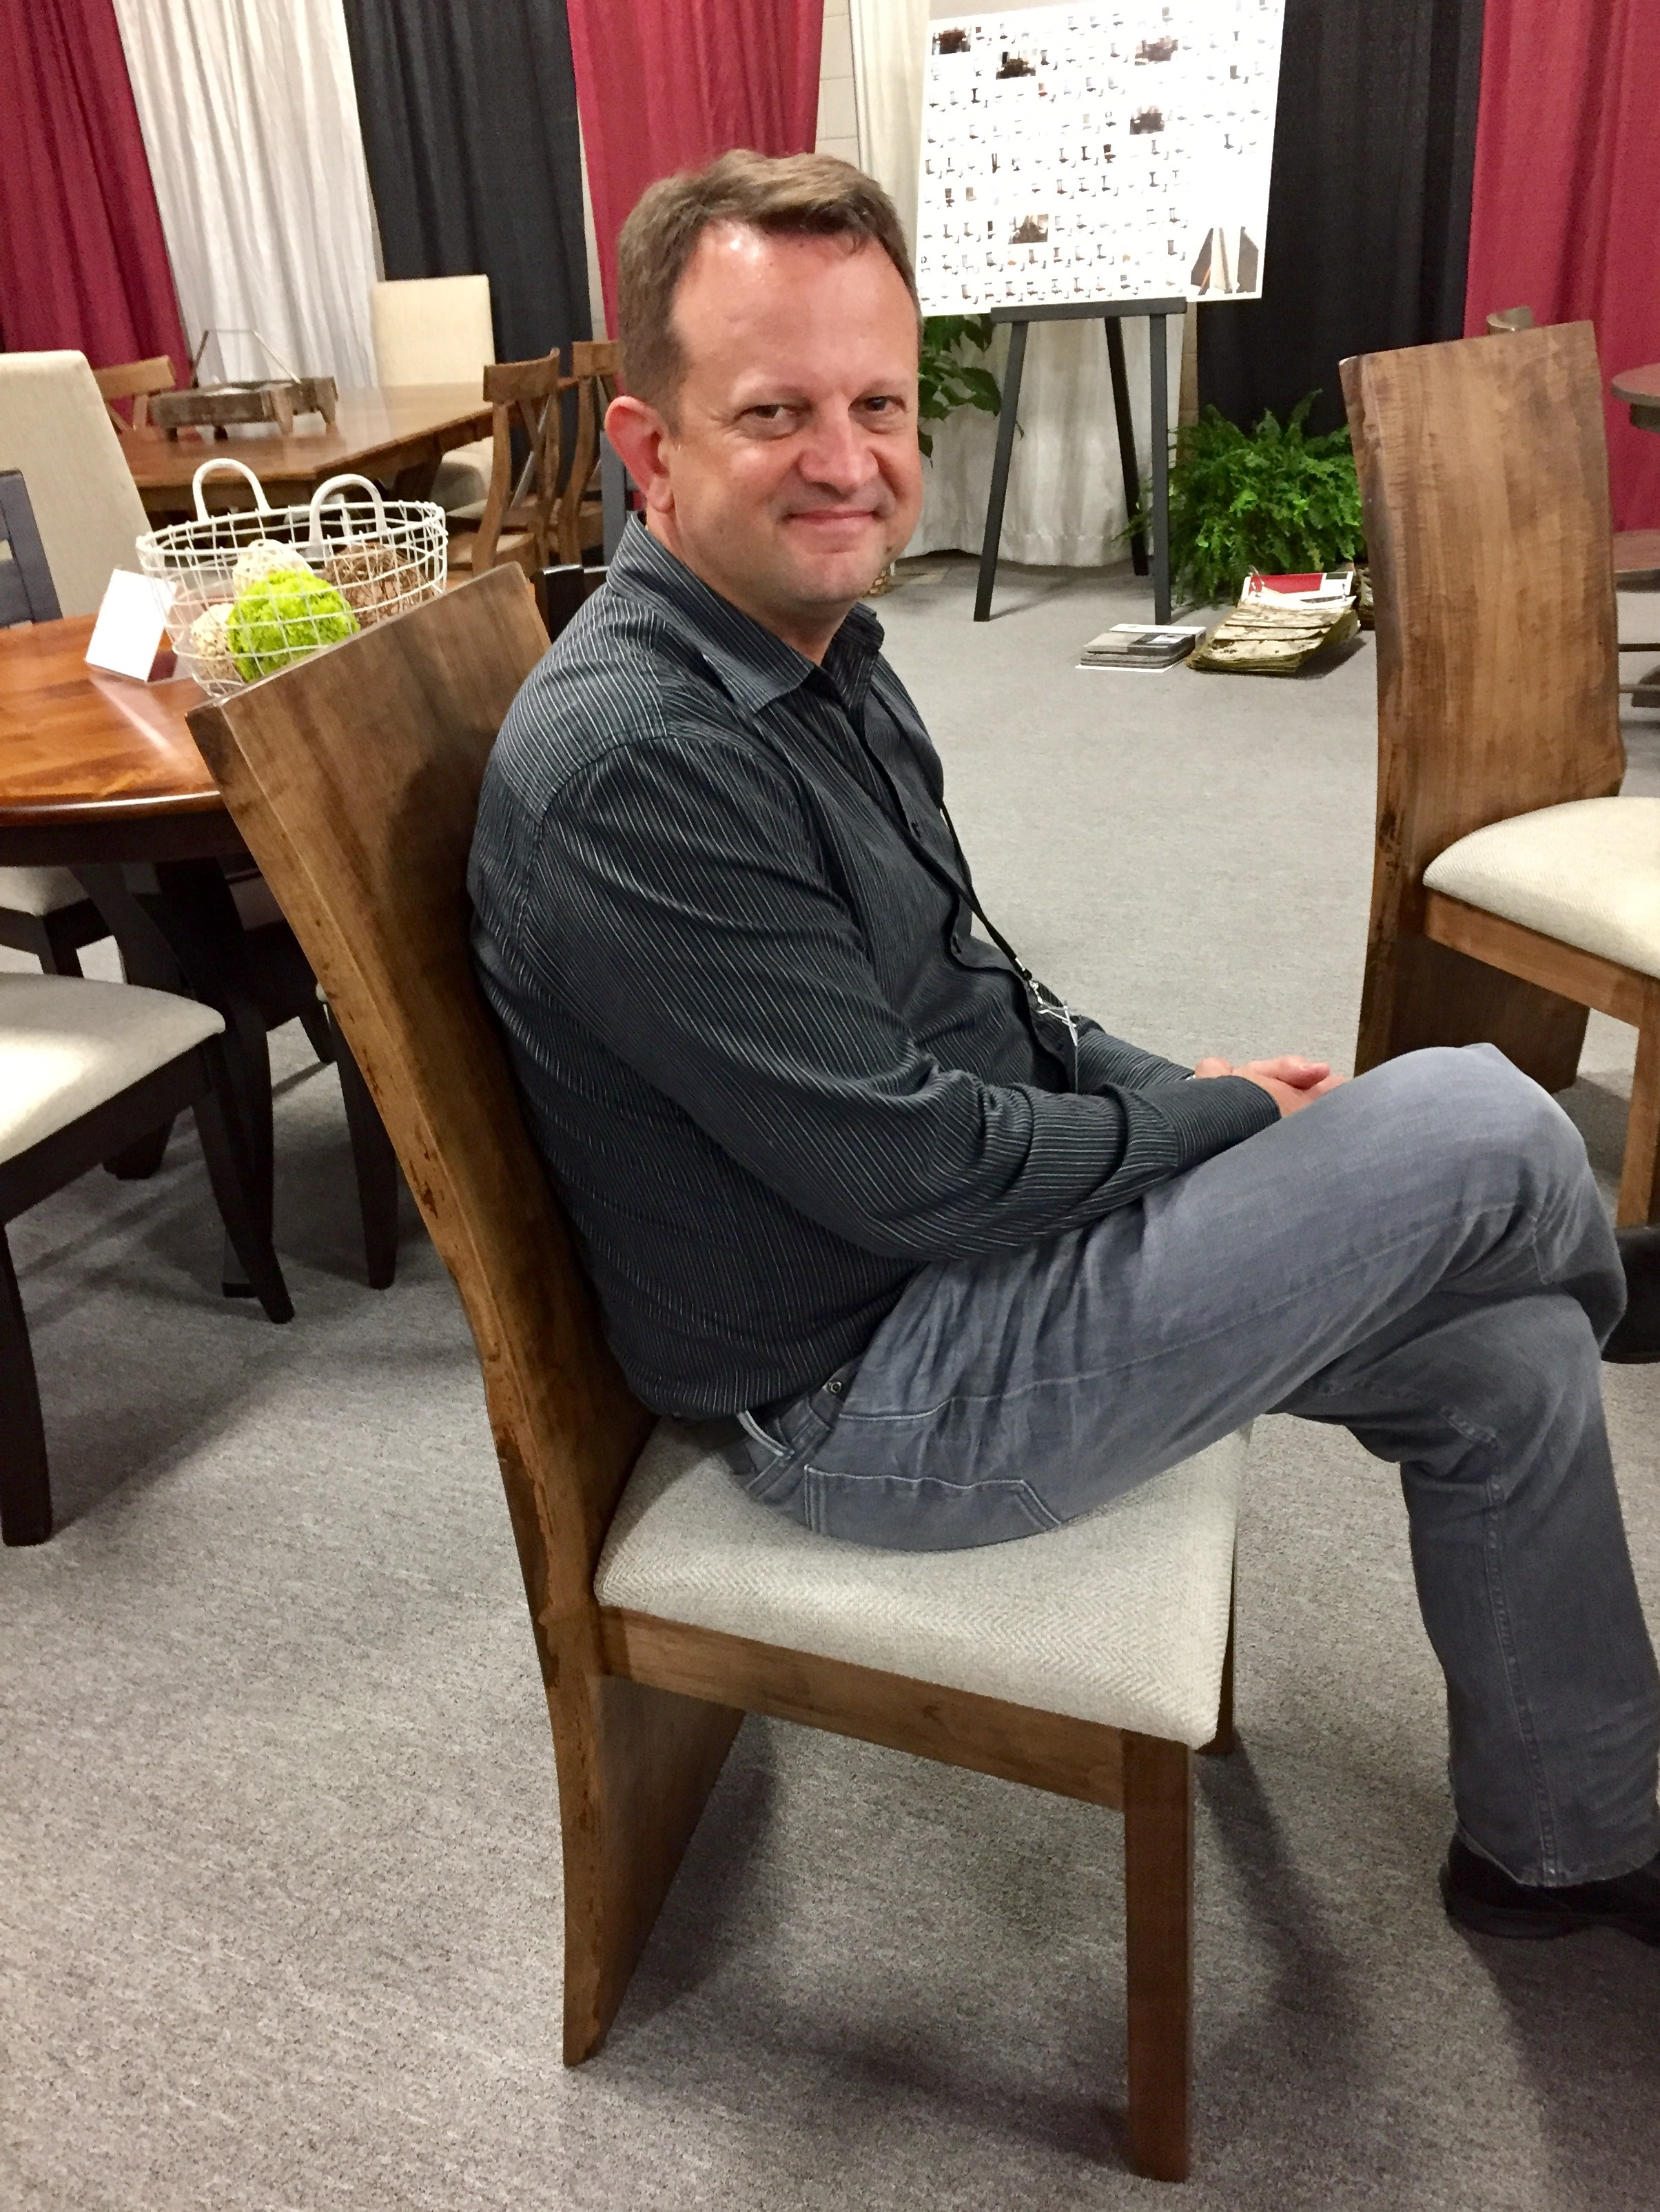 CEO Jim Miller testing out dining chairs